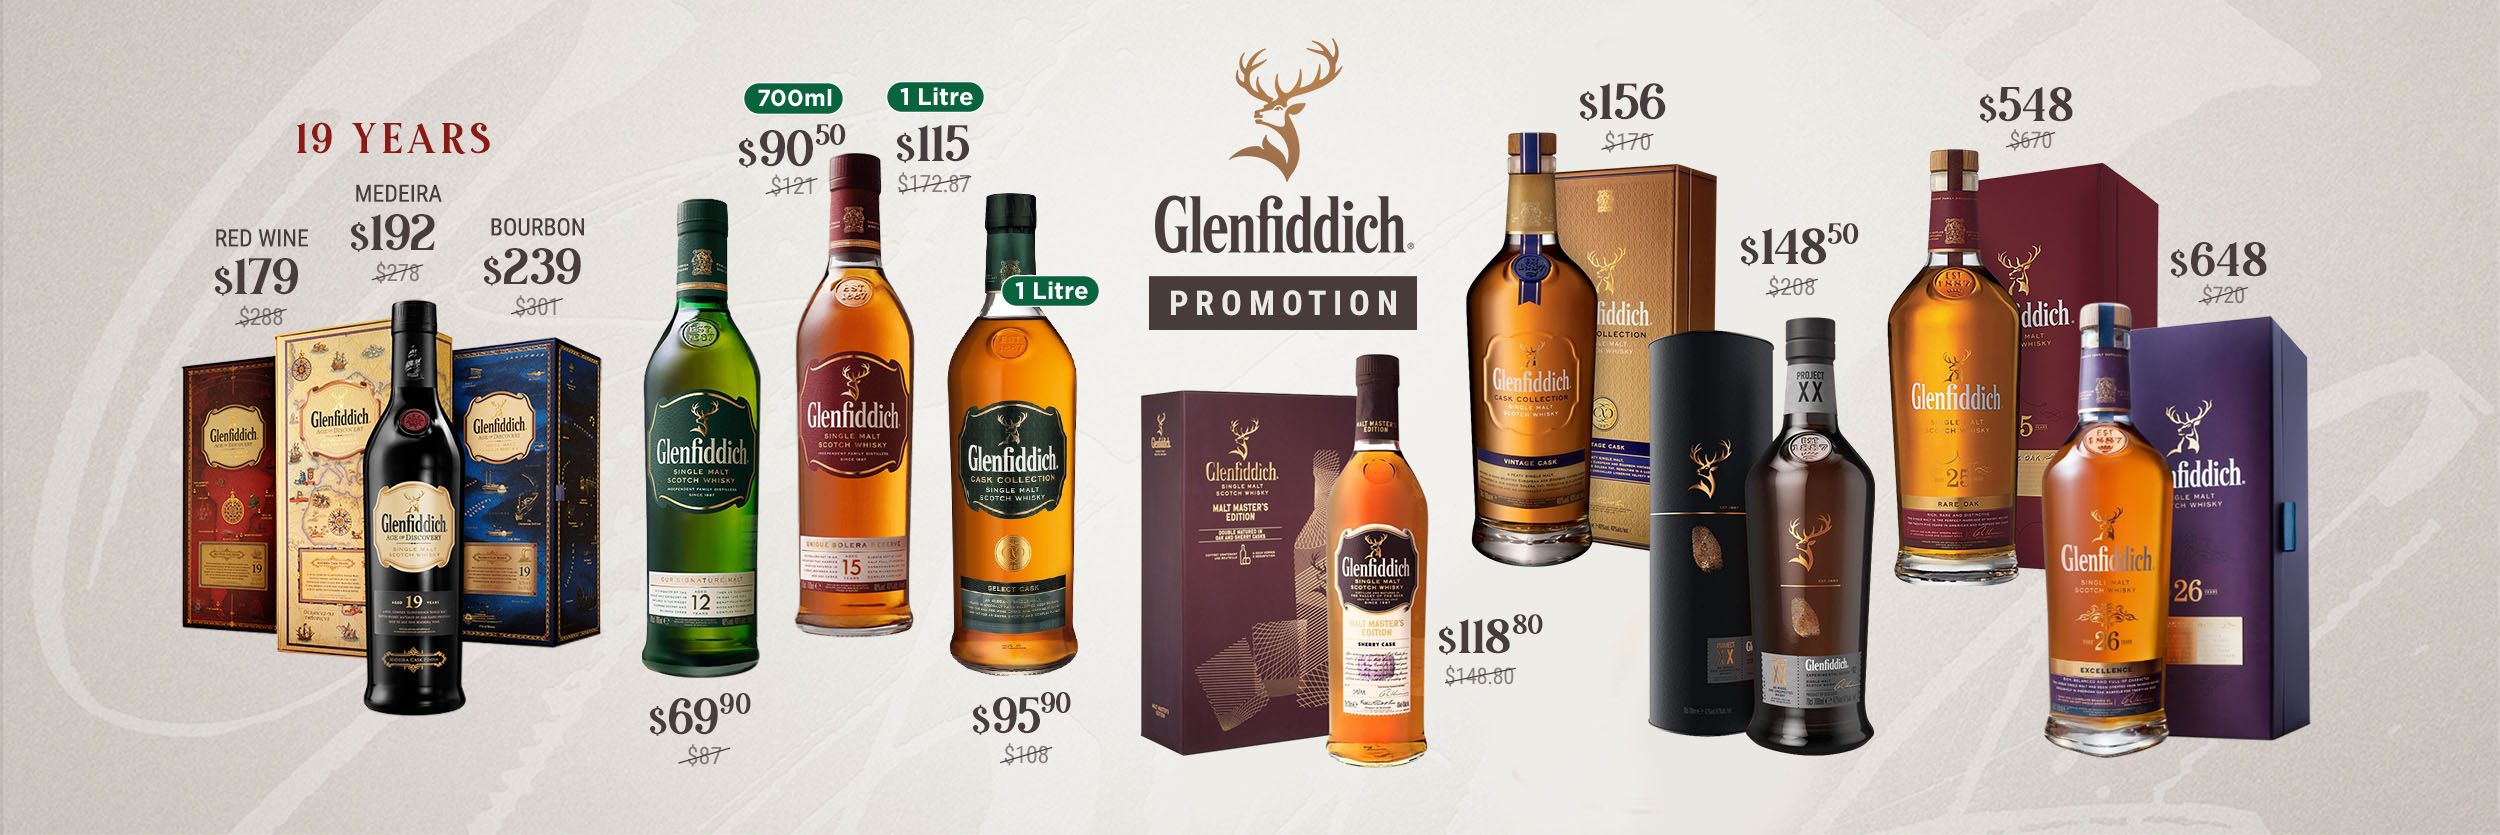 Glenfiddich Primary